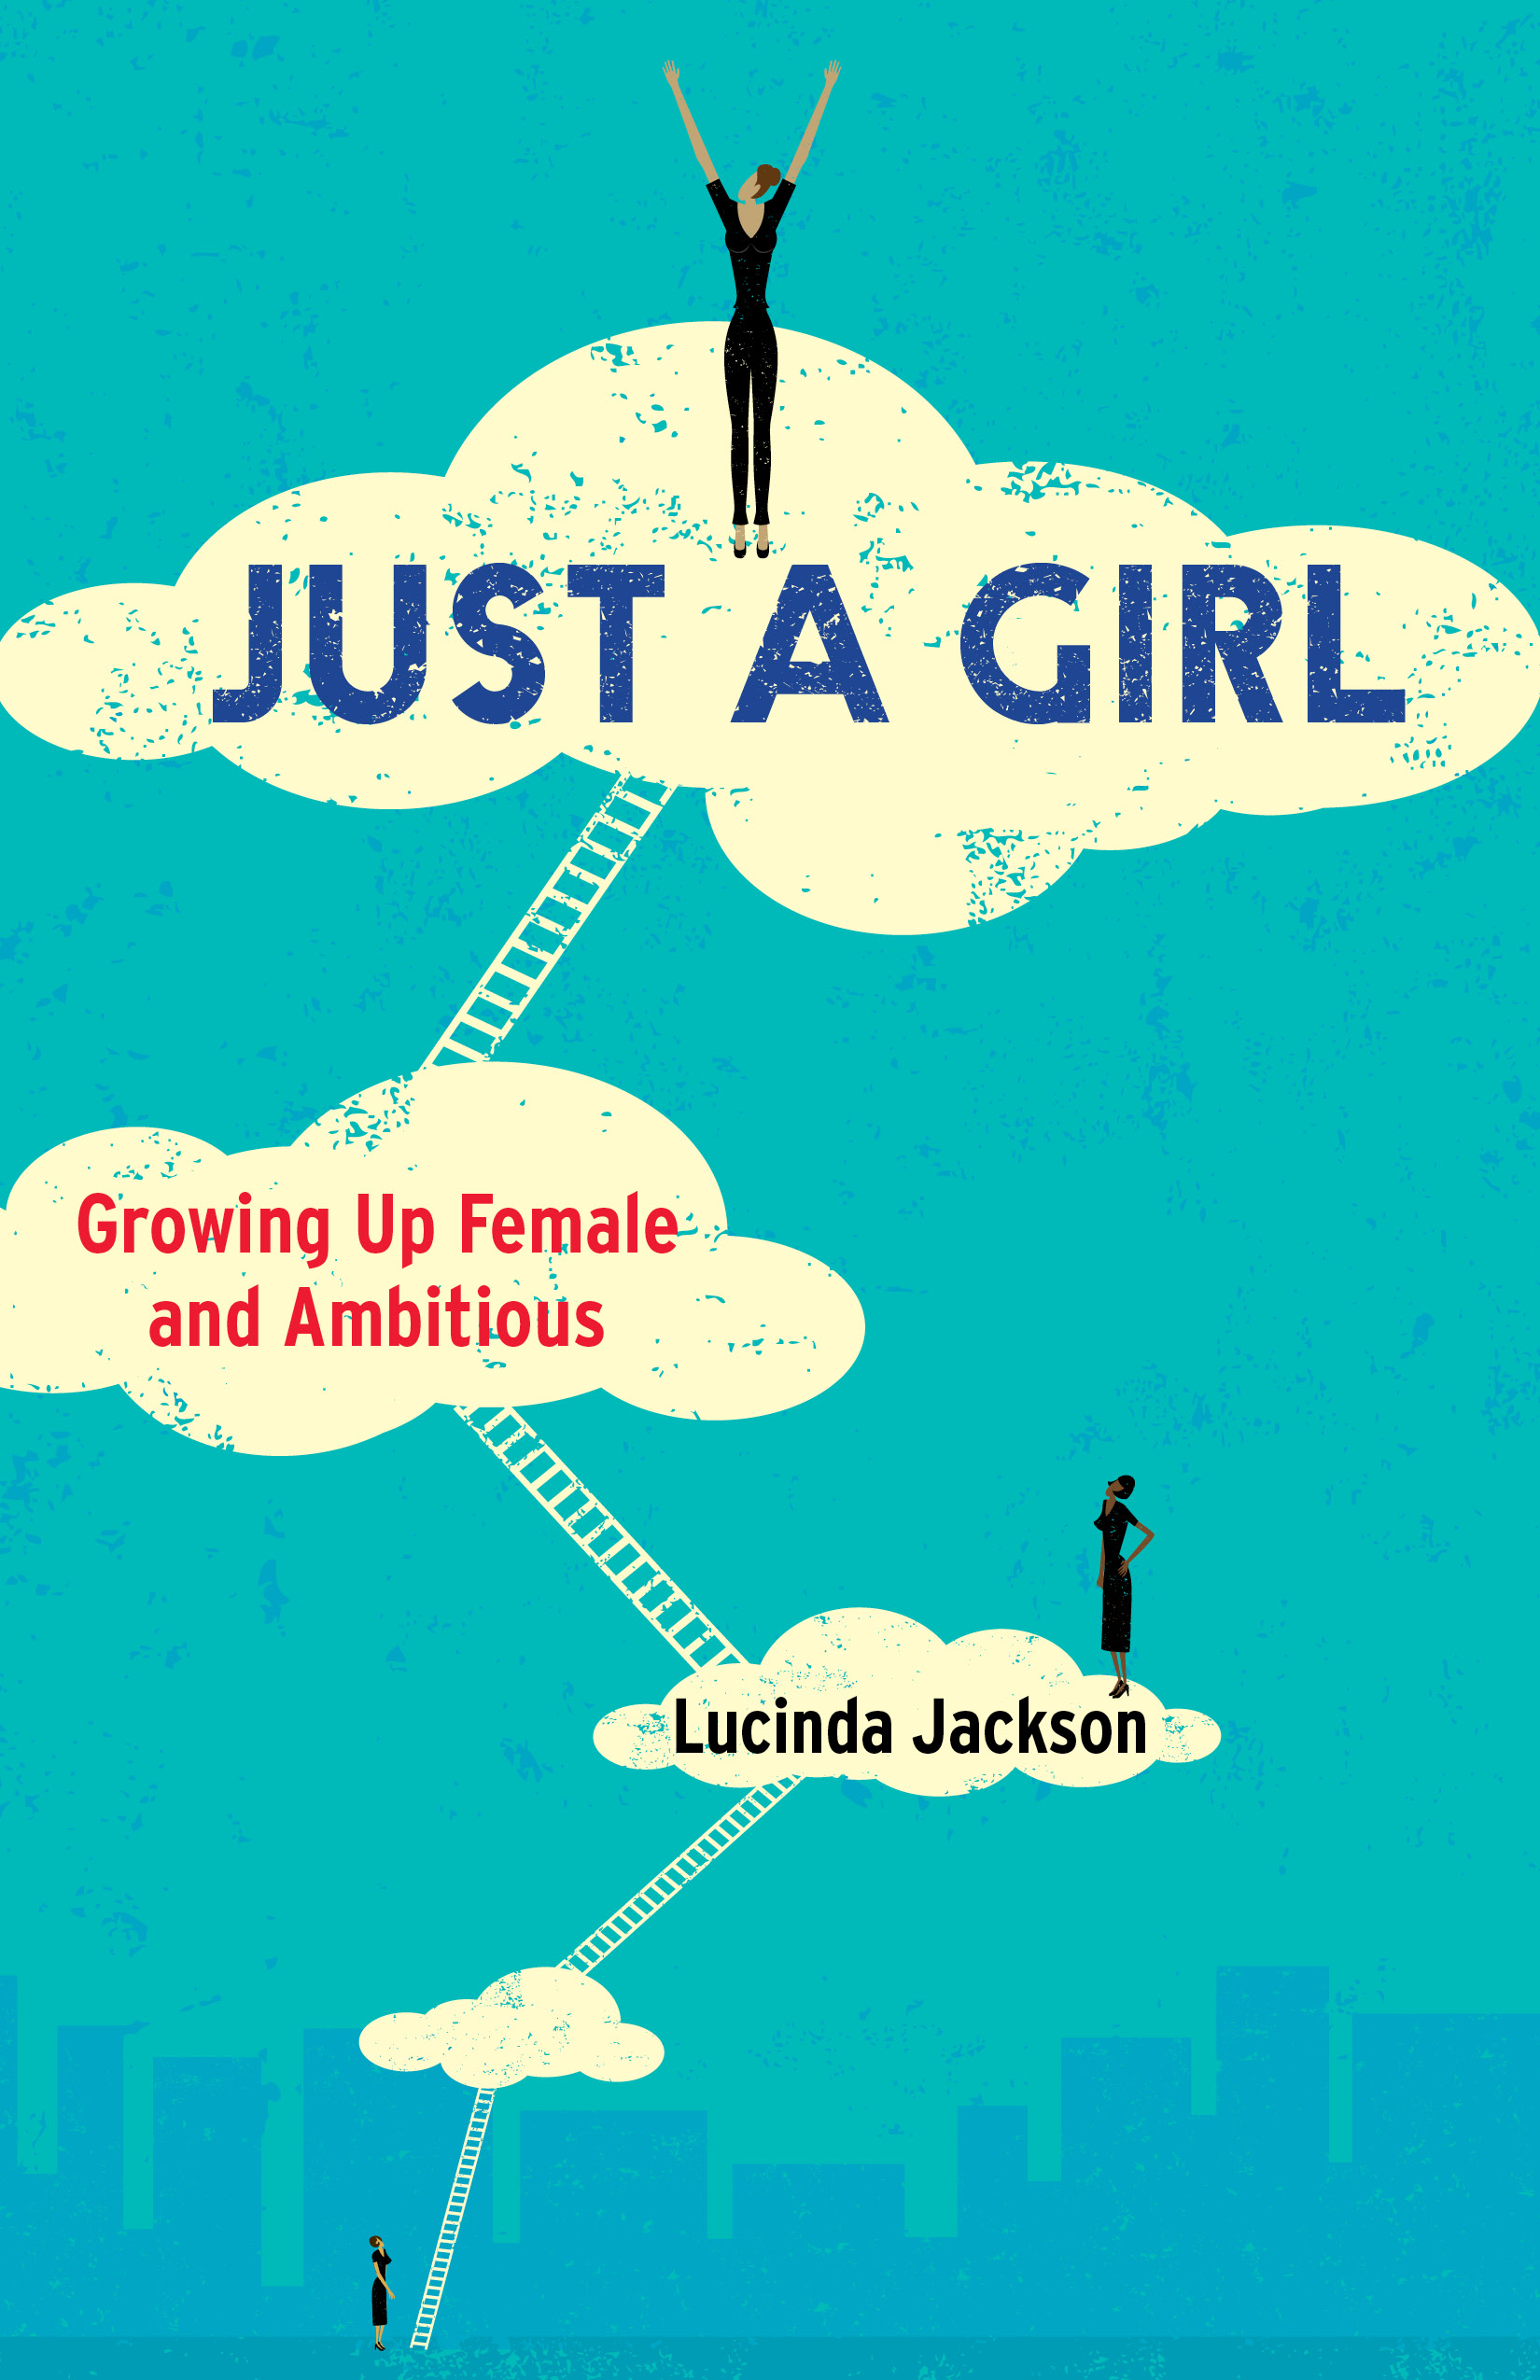 Just a Girl: Growing Up Female and Ambitious